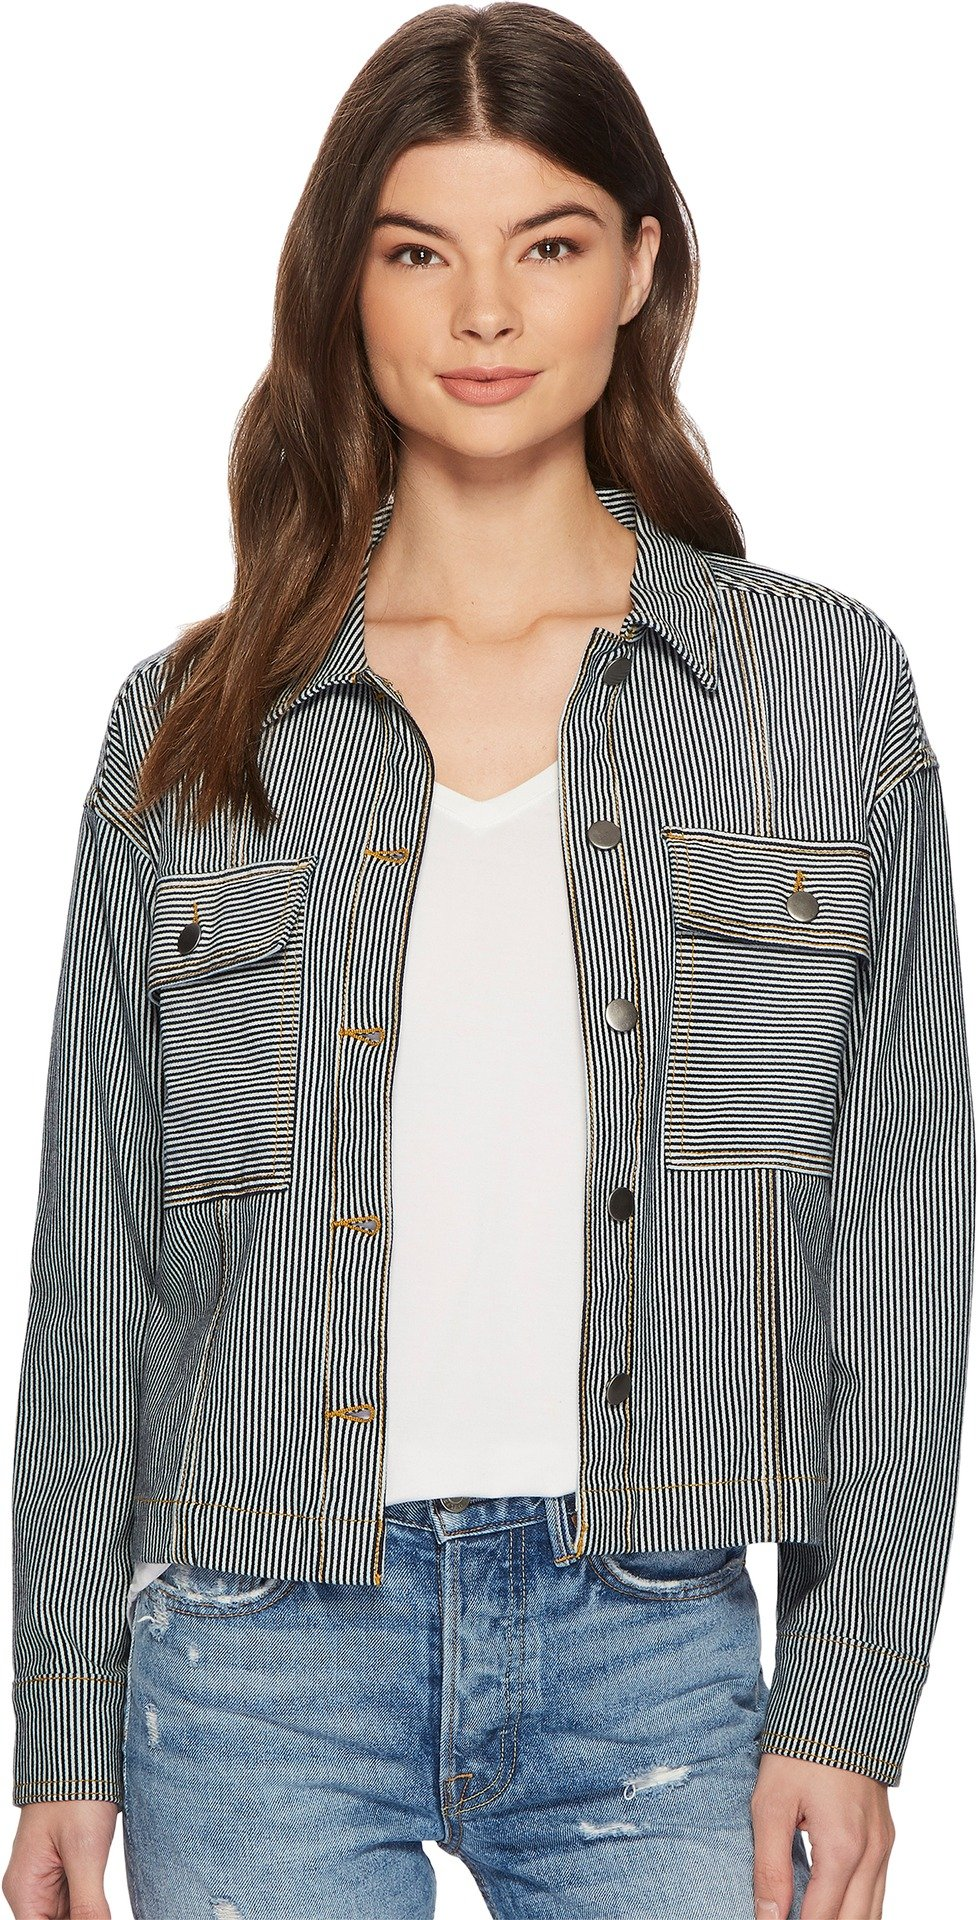 Splendid Women's Starboard Indigo Stripe Double Pocket Jacket Dark Wash Large by Splendid